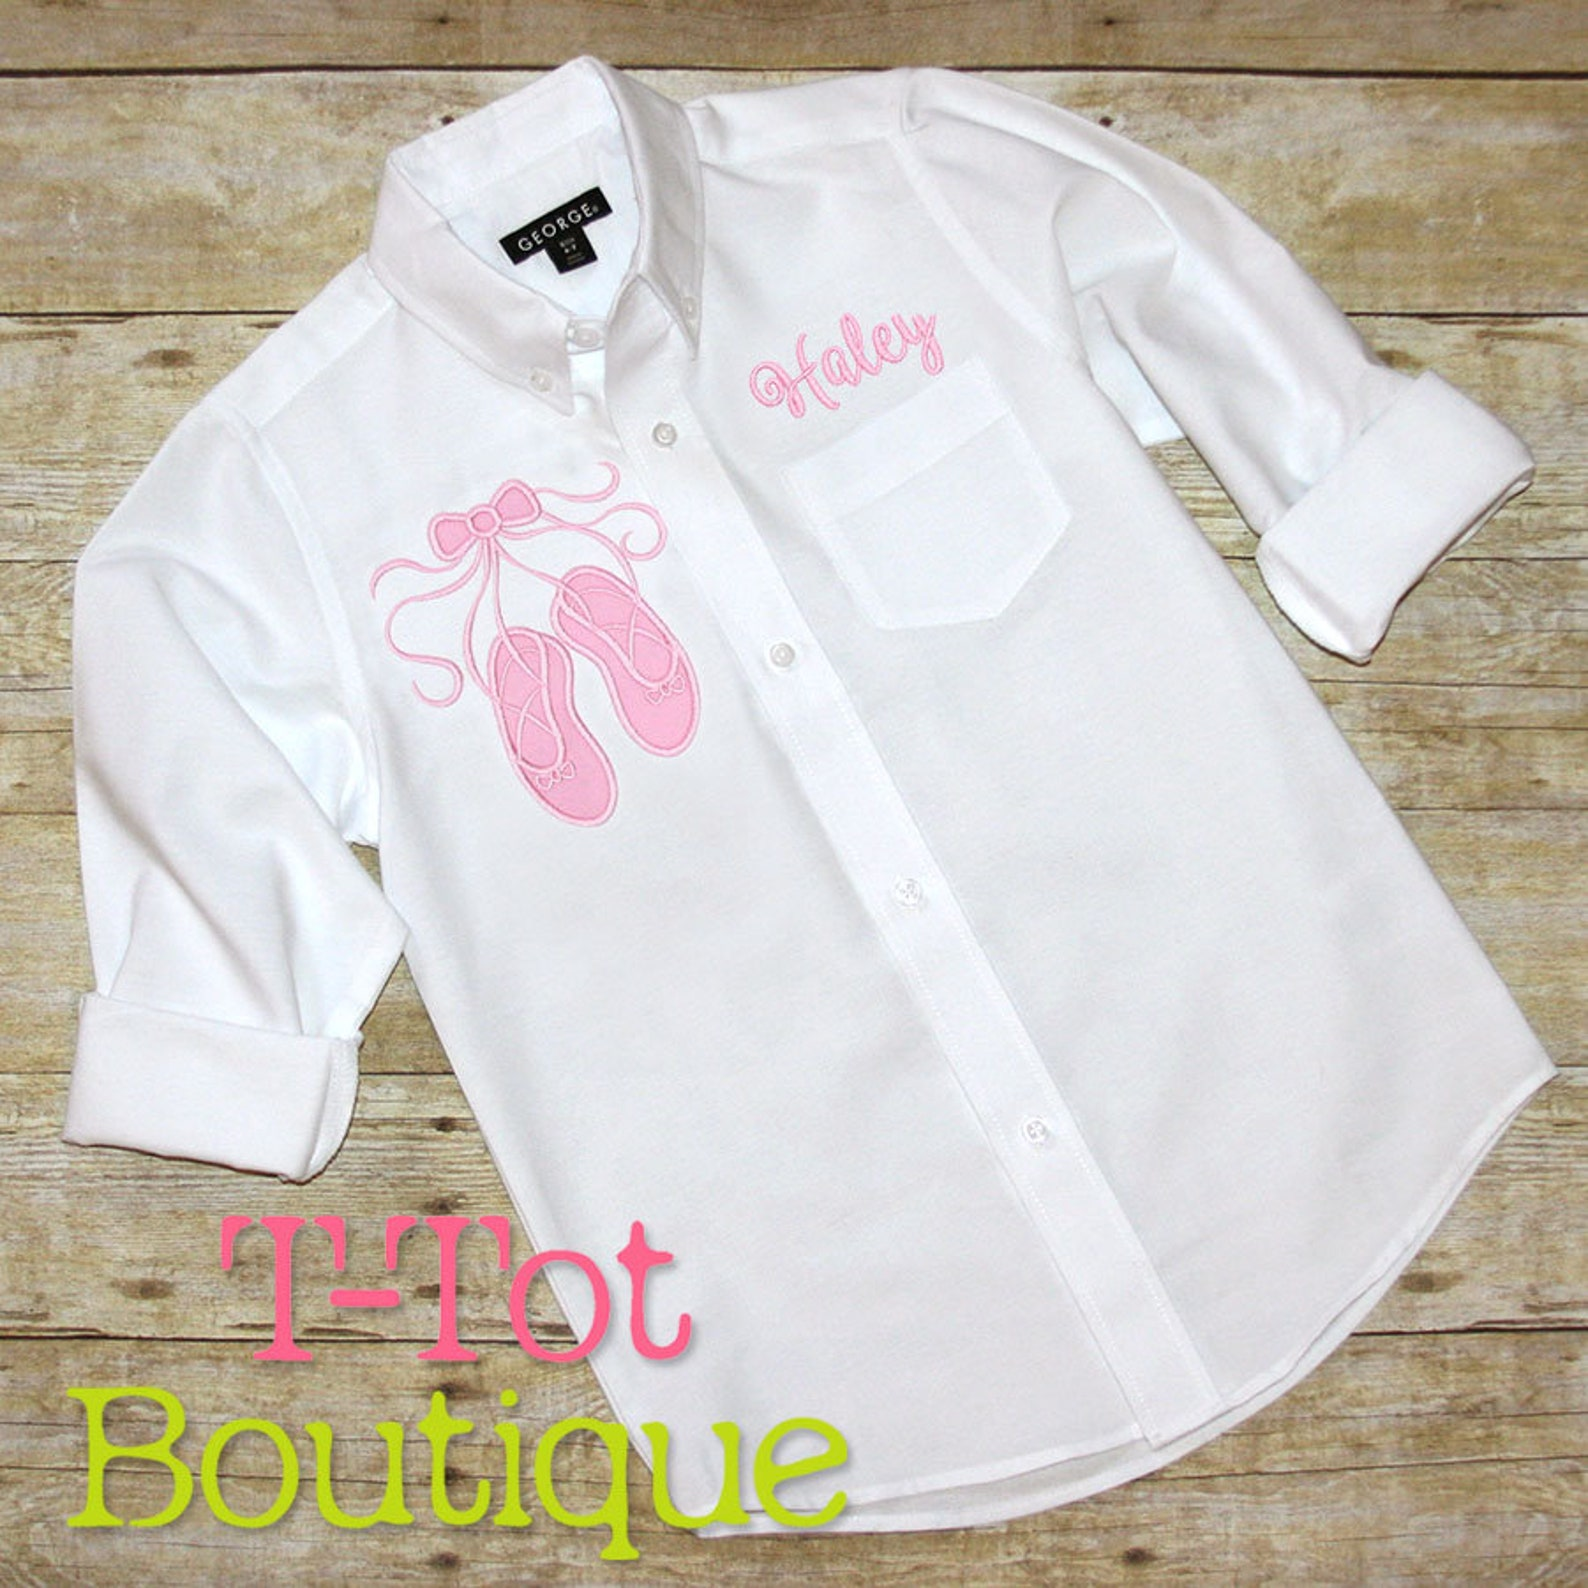 dance recital cover up oversized monogram button up shirt - ballet shoes - dance revue review gift pointe shoes slippers over si